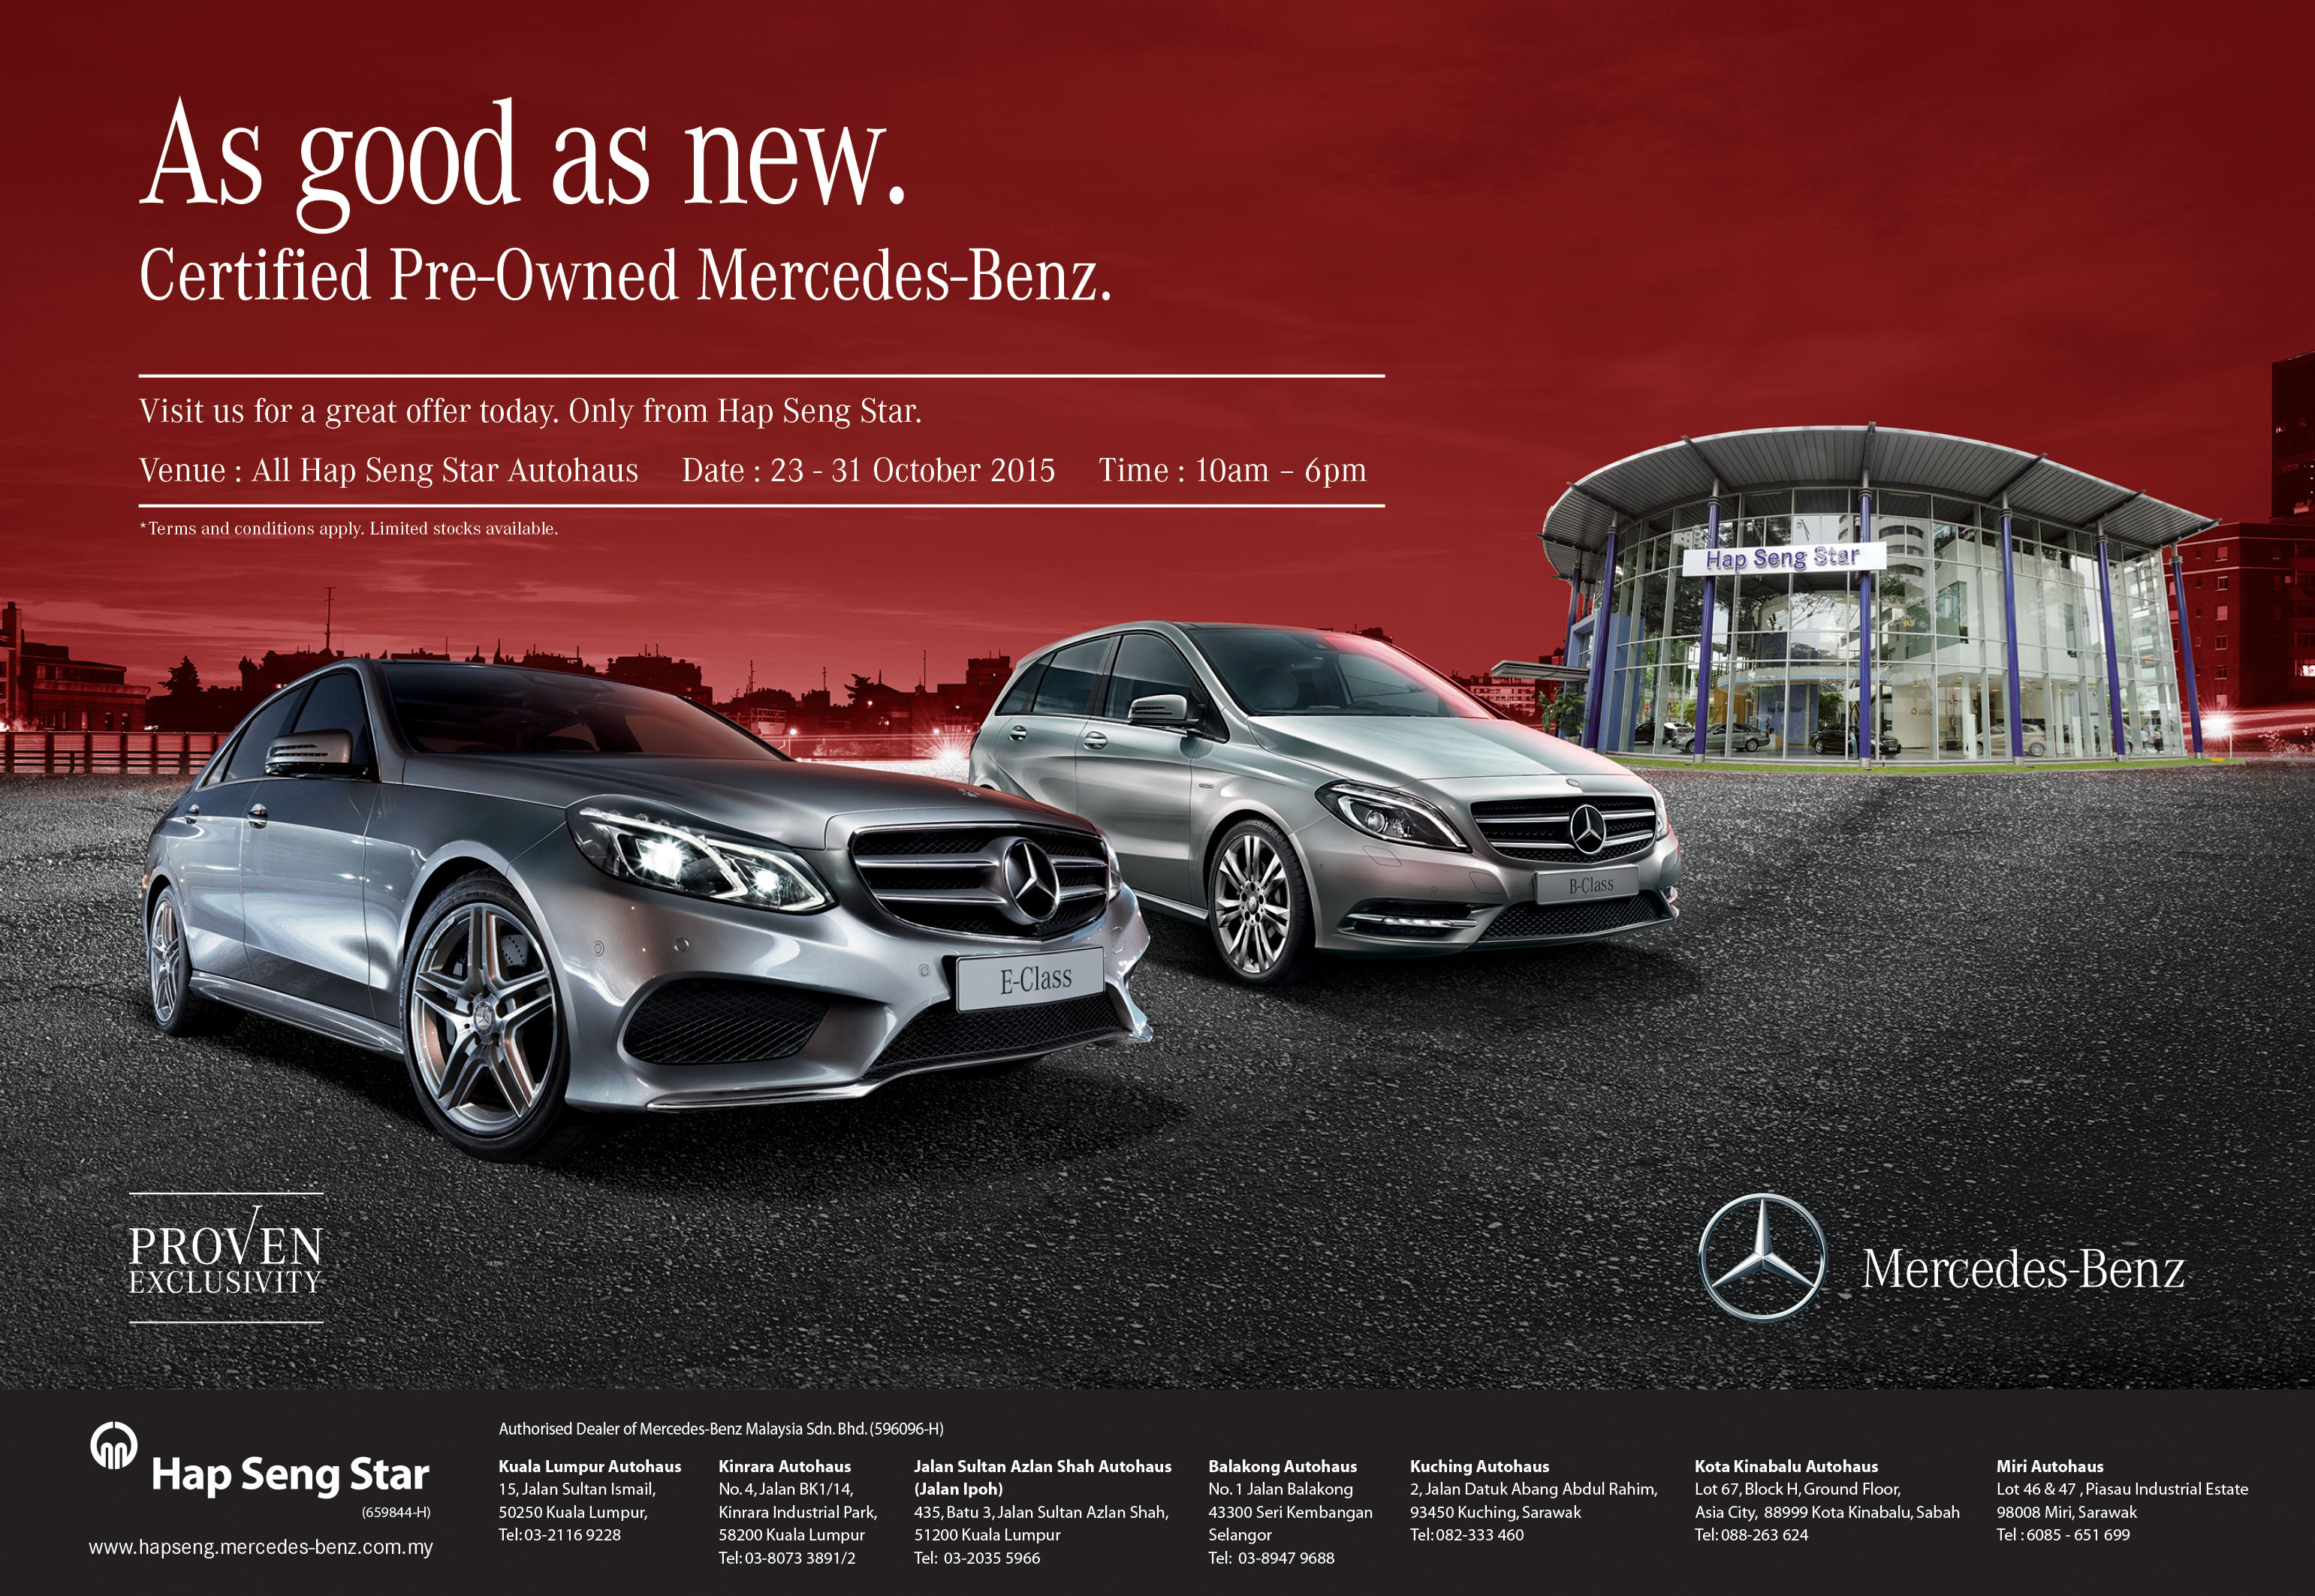 Ad Enjoy Attractive Prices On Mercedes Benz Models With Hap Seng Star S Pre Owned Campaign This